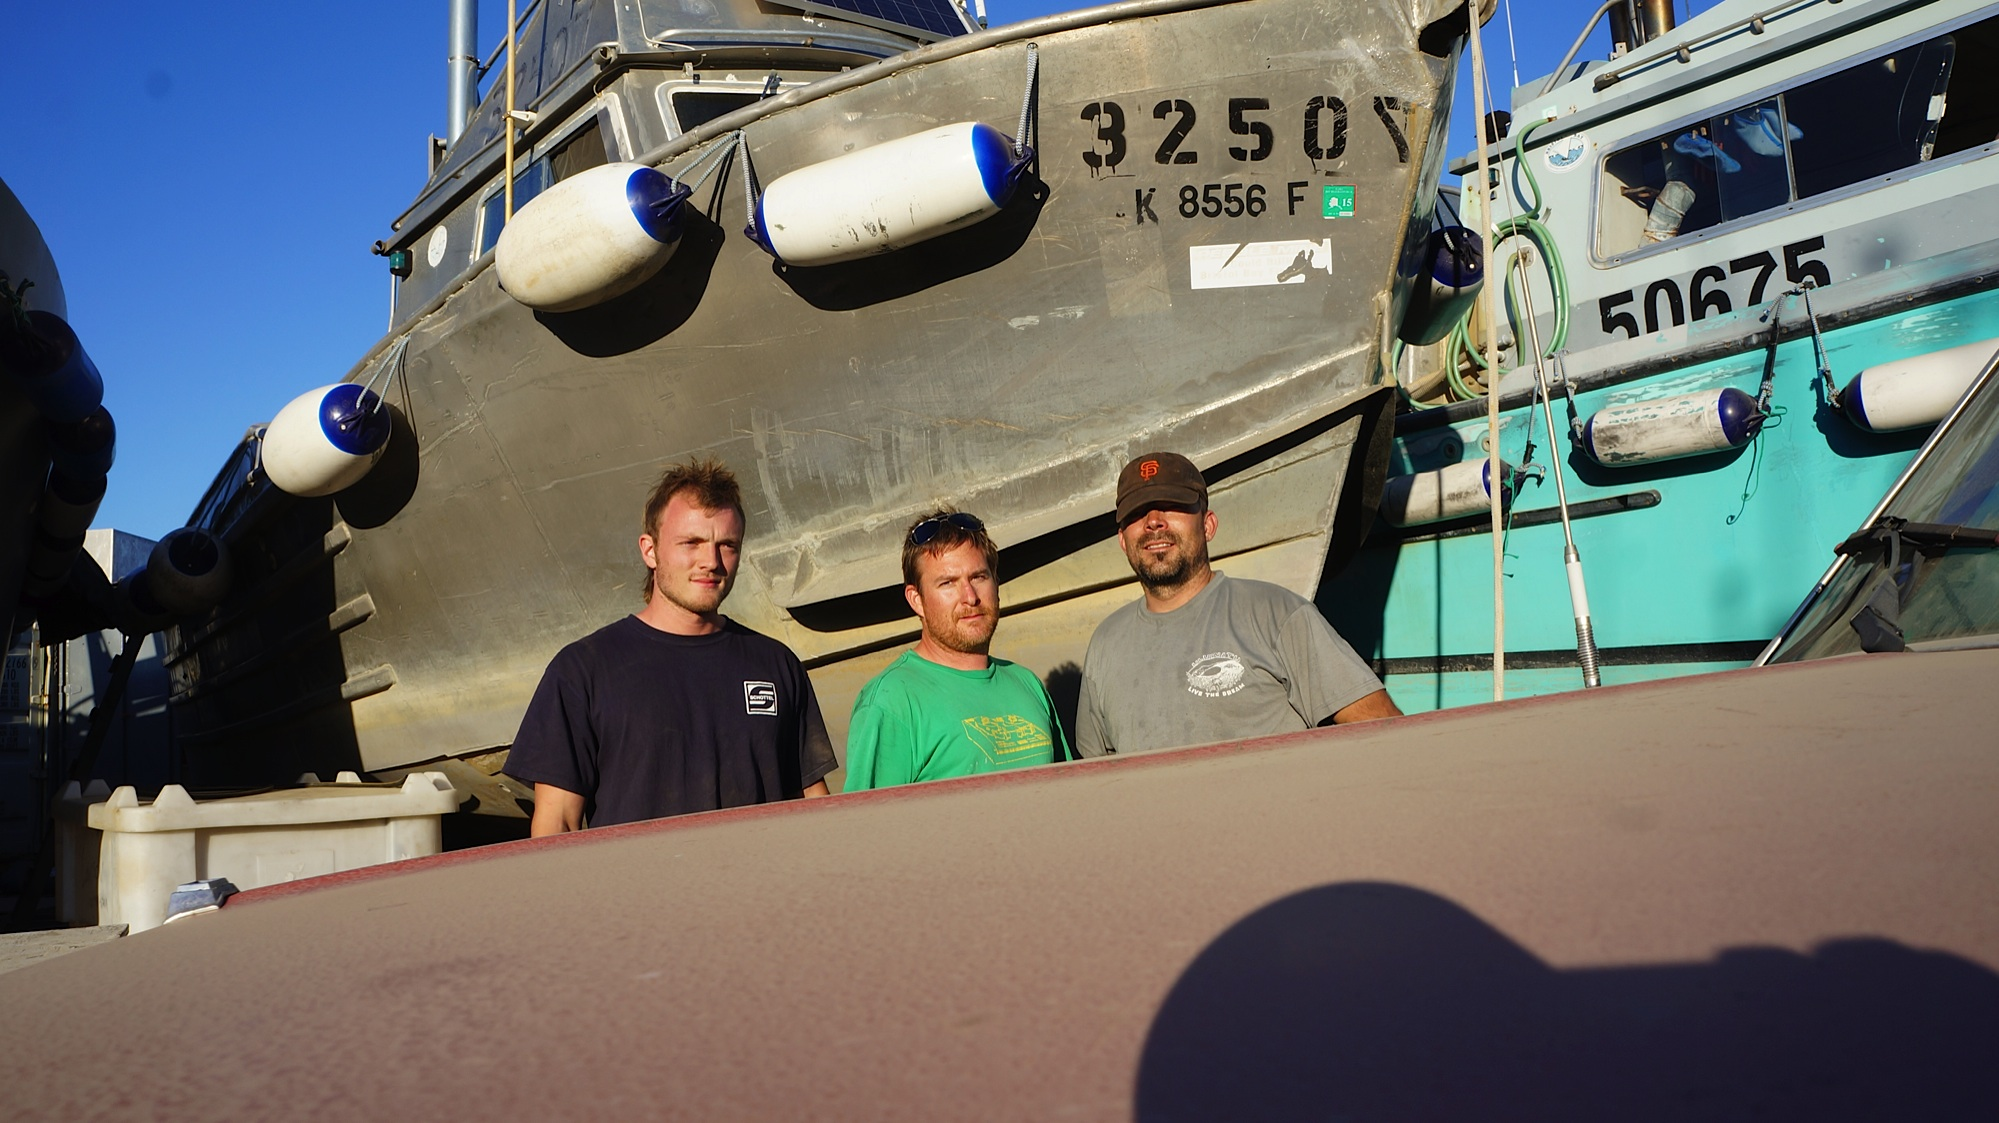 The crew from F/V Potential (from the left) Daniel Strong (and he is) Elijah Lawson, and Freddy Reeves.